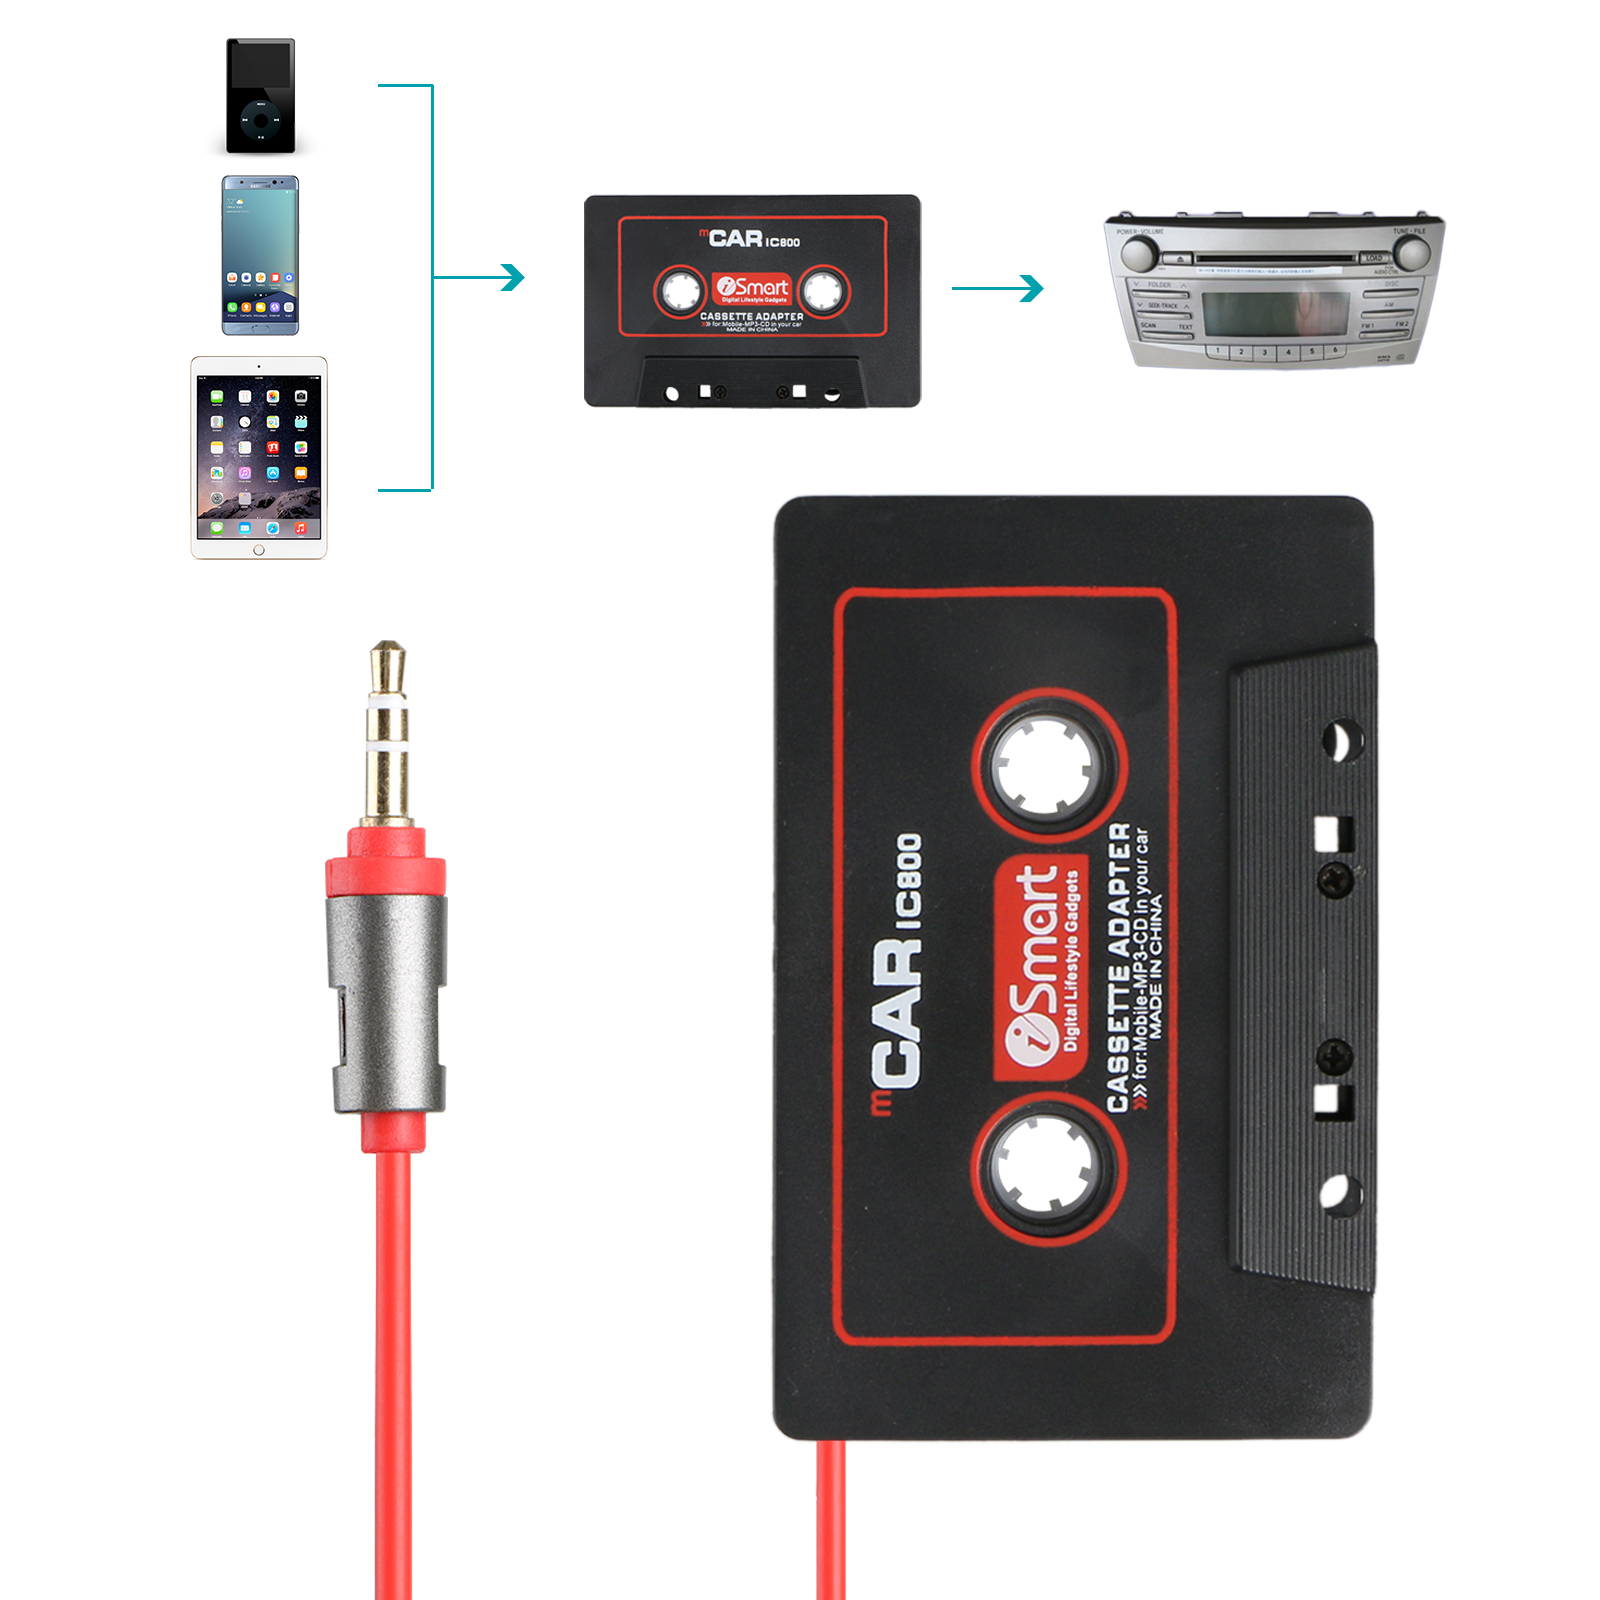 TSV Car Audio AUX Cassette Player Tape 3.5mm Adapter Aux Cable Cord For MP3 Phone